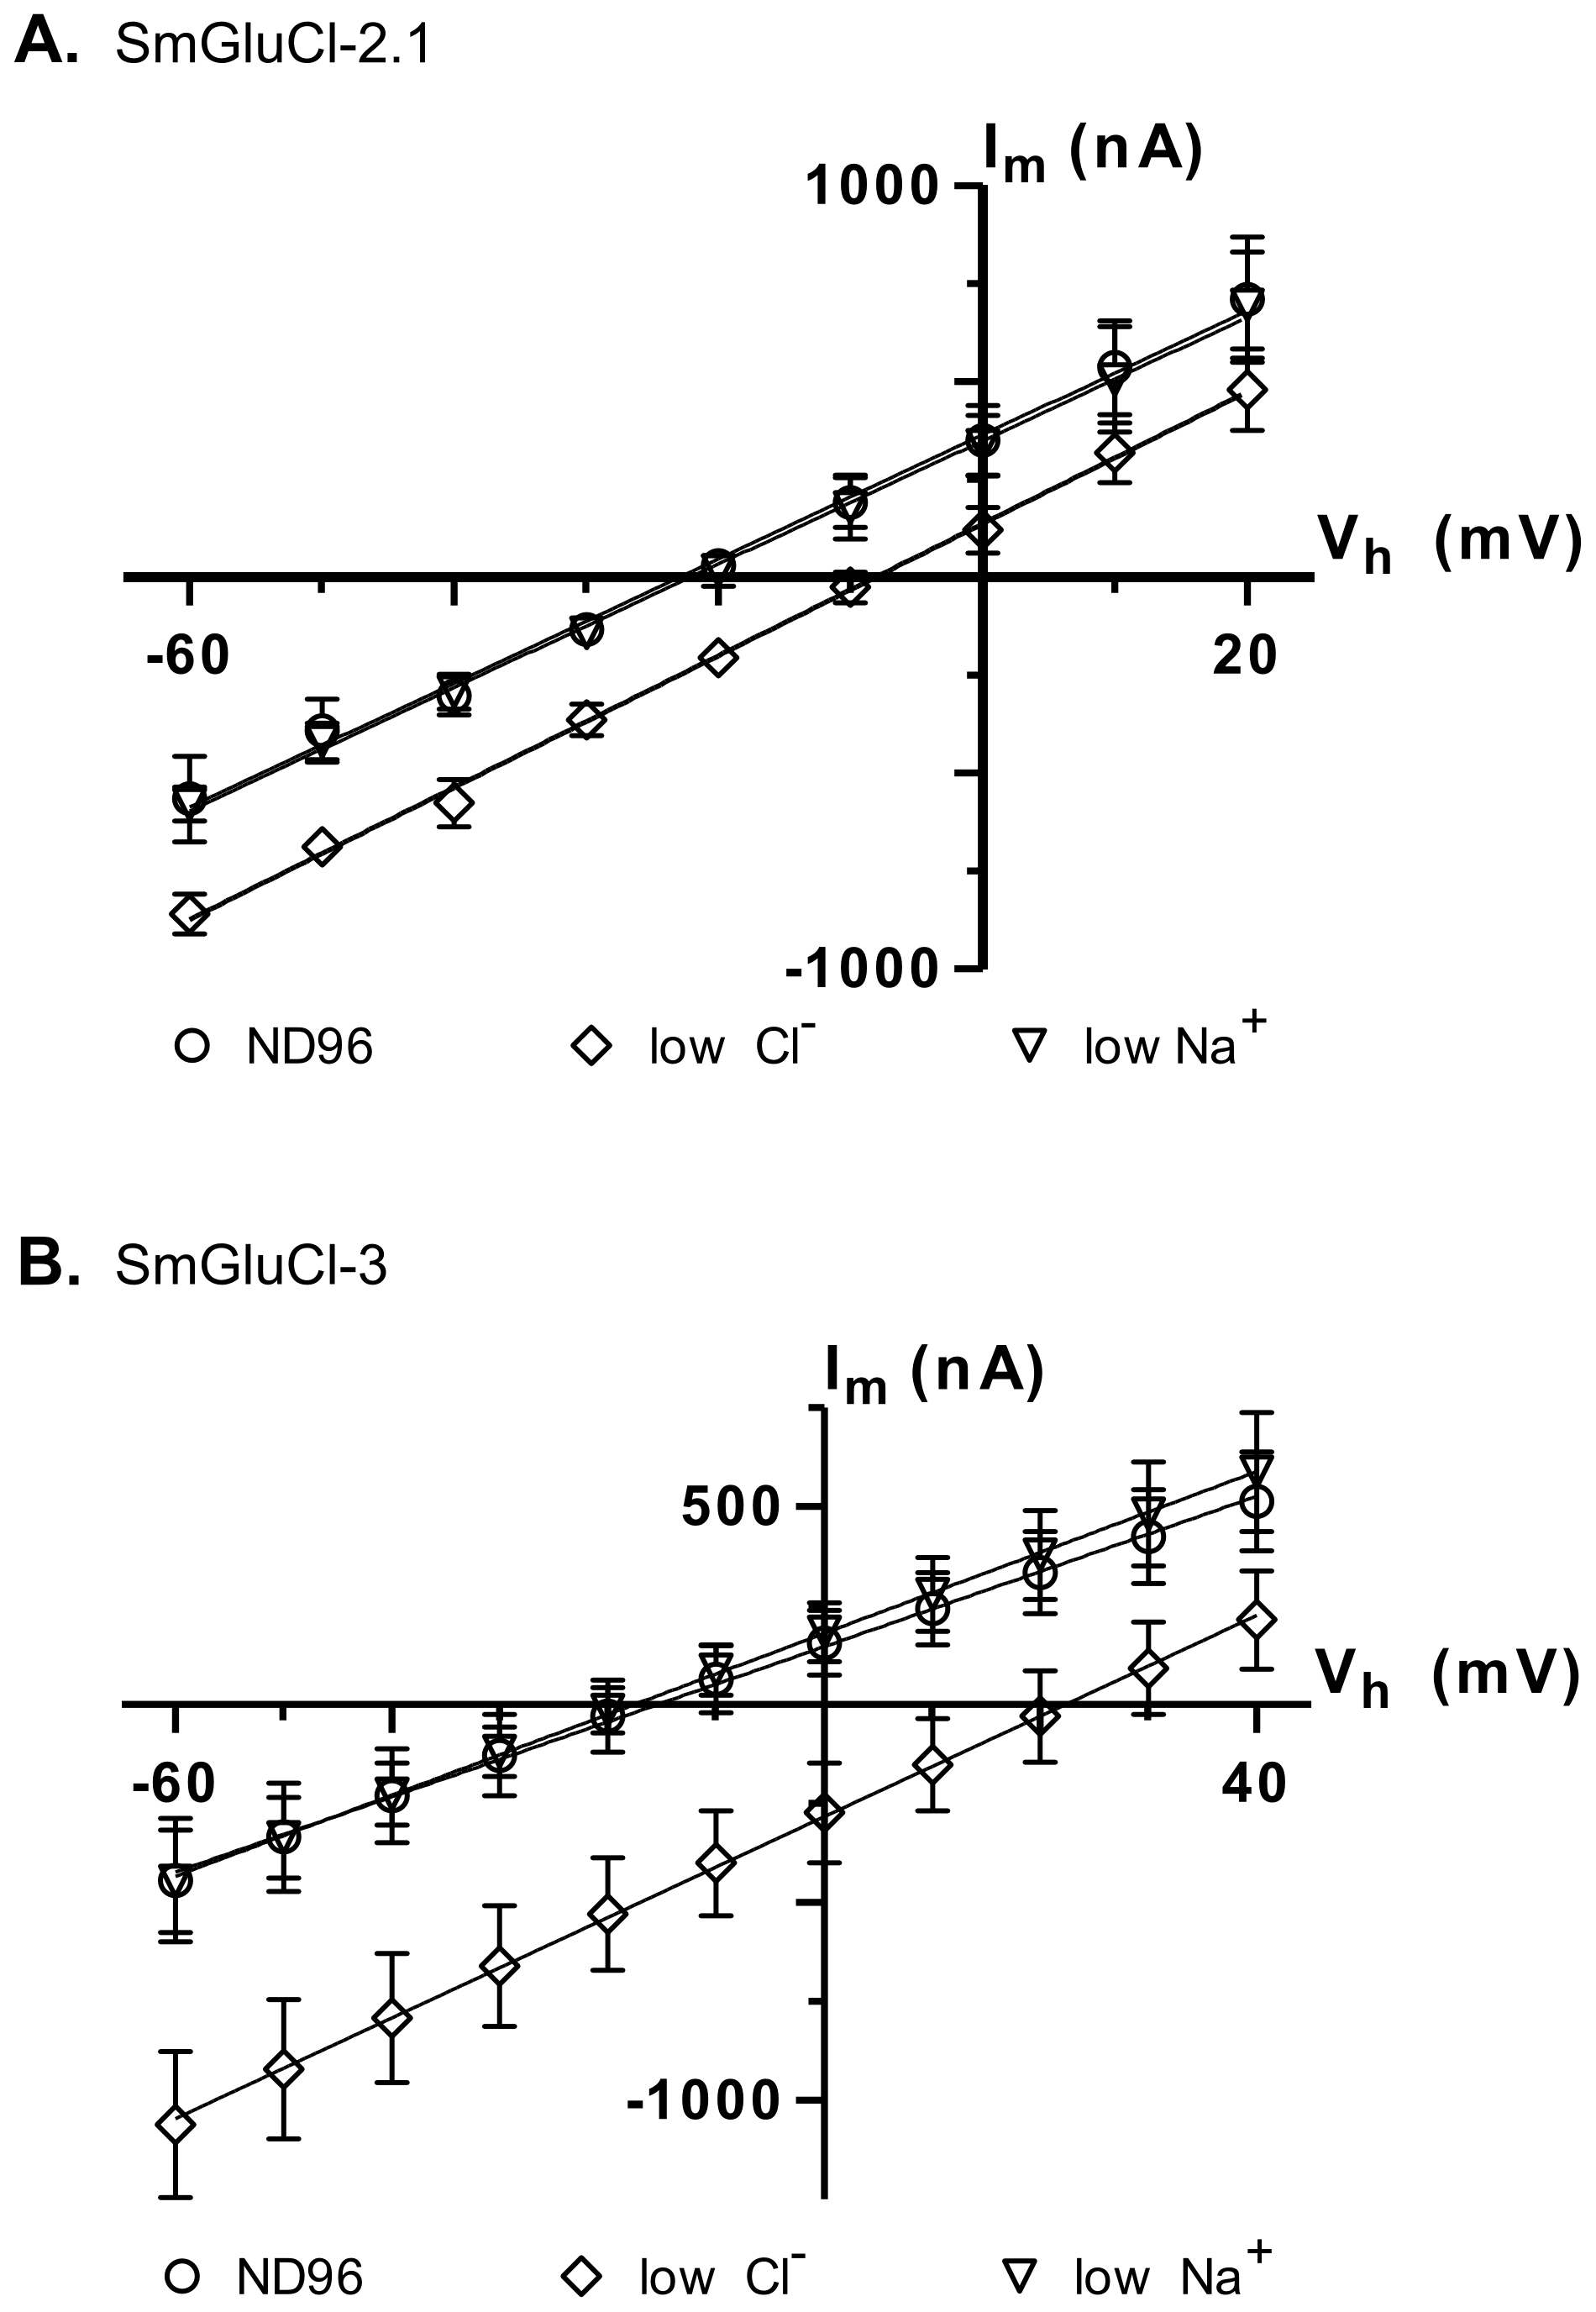 Ion selectivity of SmGluCl-2.1 and SmGluCl-3.